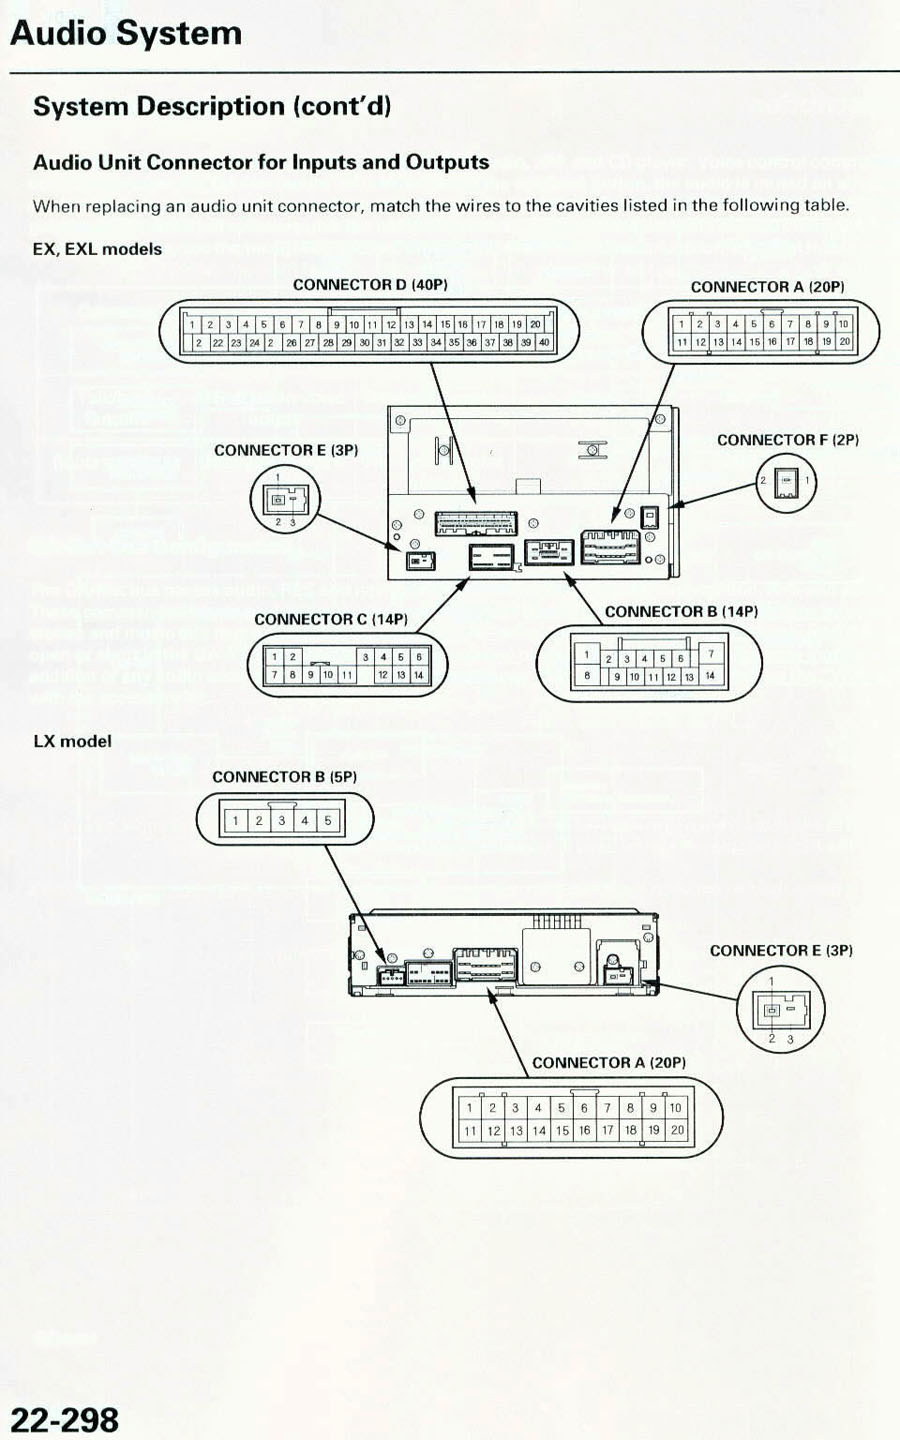 Alpine S Sub Wiring Diagram Will Be A Thing Mrp F250 4 Channel Amp File Type Audio Connector 2006 182 0 Kb 22742 Pioneer Car Stereo Clayton Mobile Home